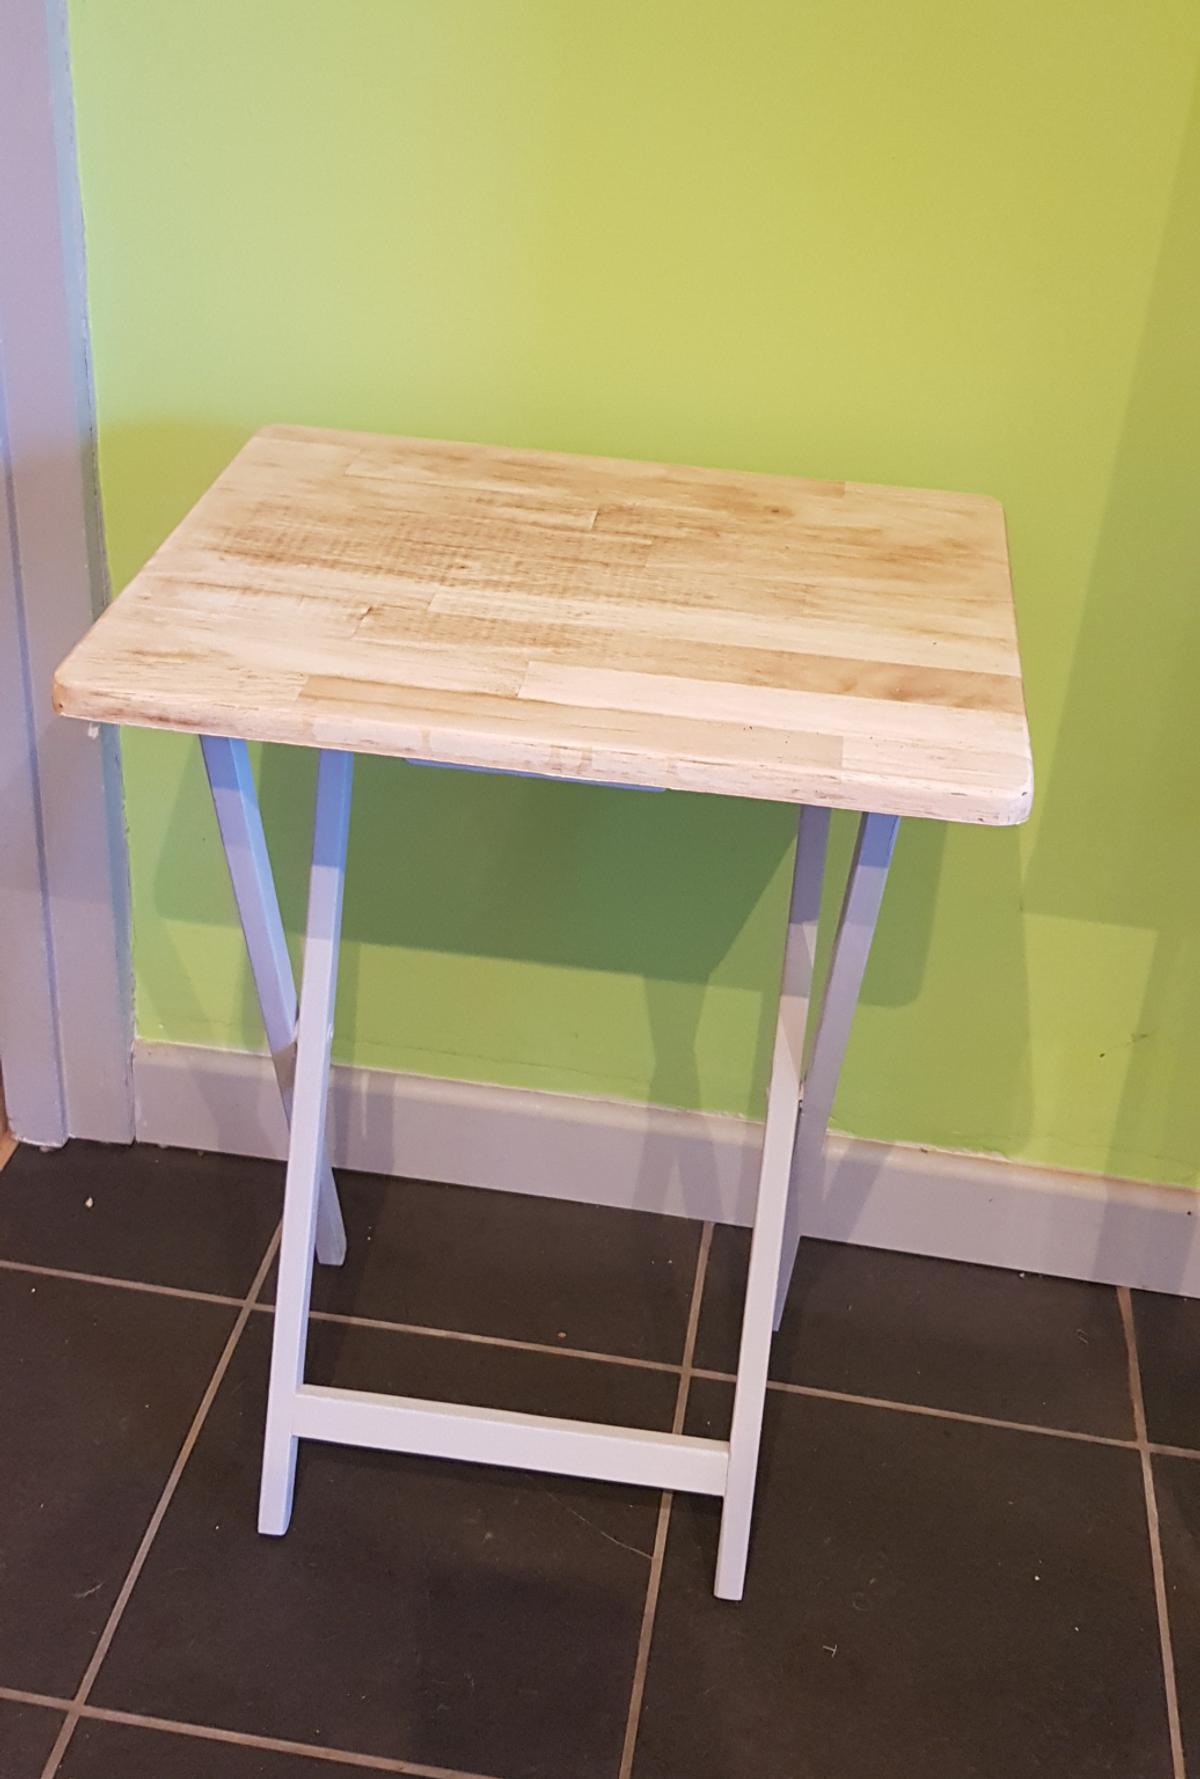 Upcycled Occasional Folding Table In B75 Birmingham For 25 00 For Sale Shpock